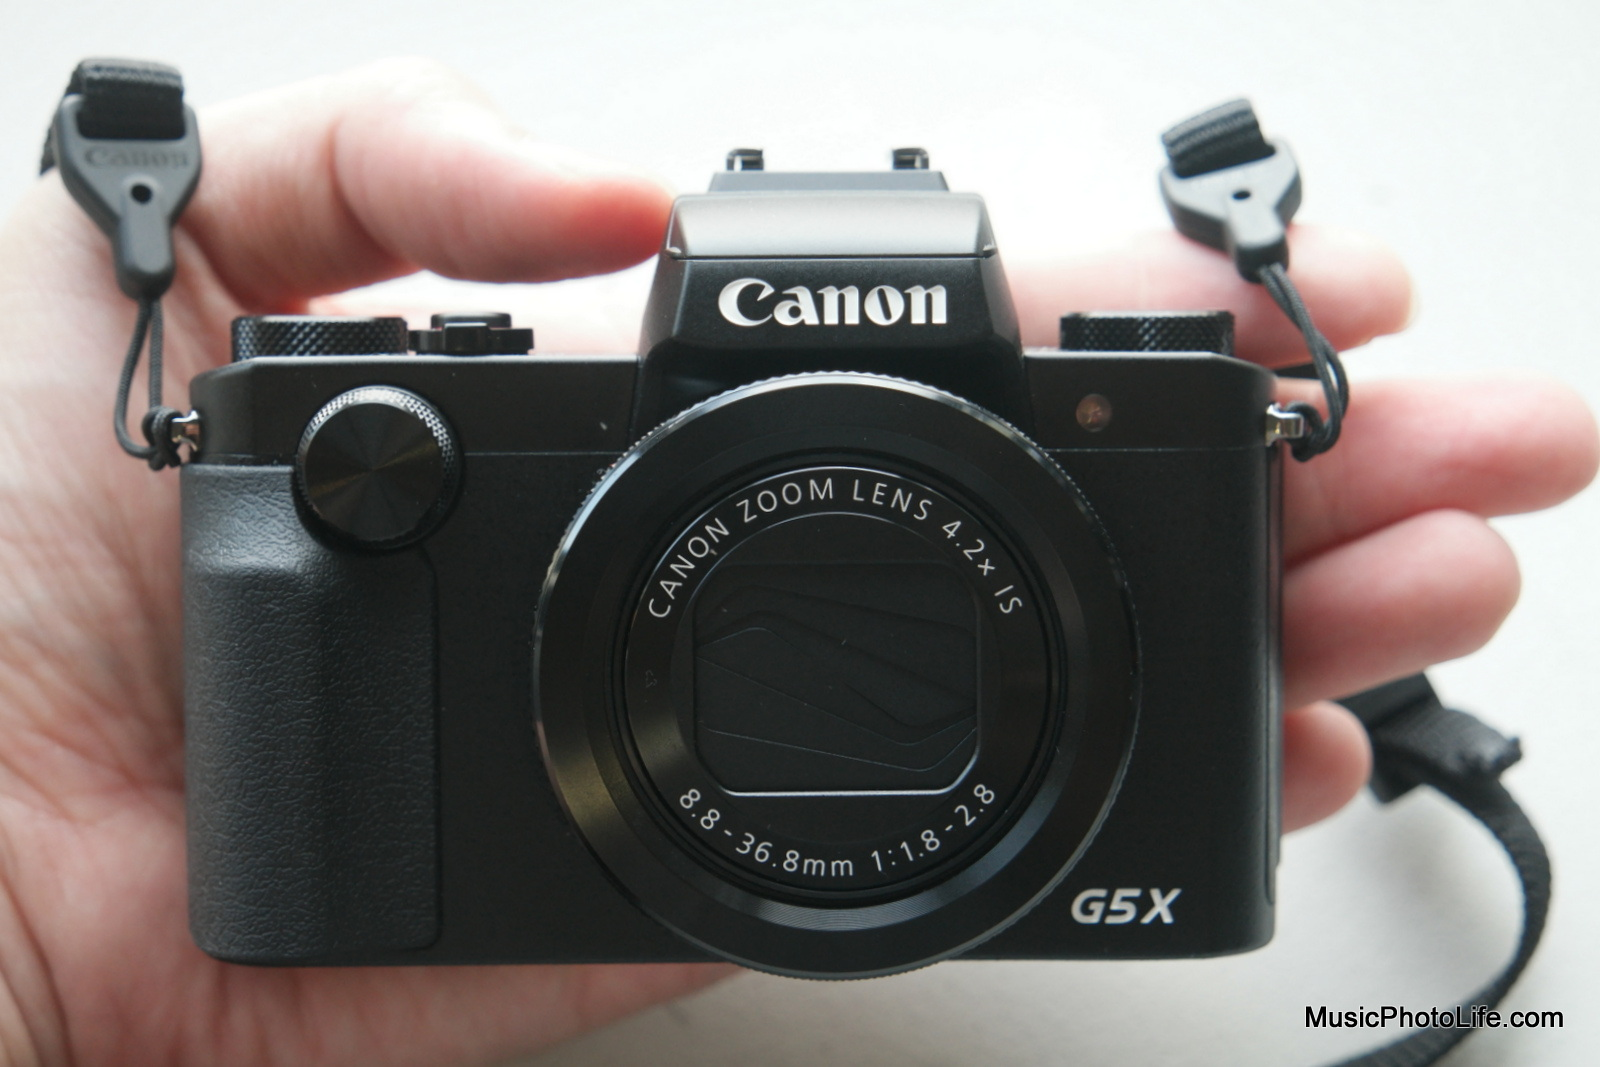 Canon G5X on my hand